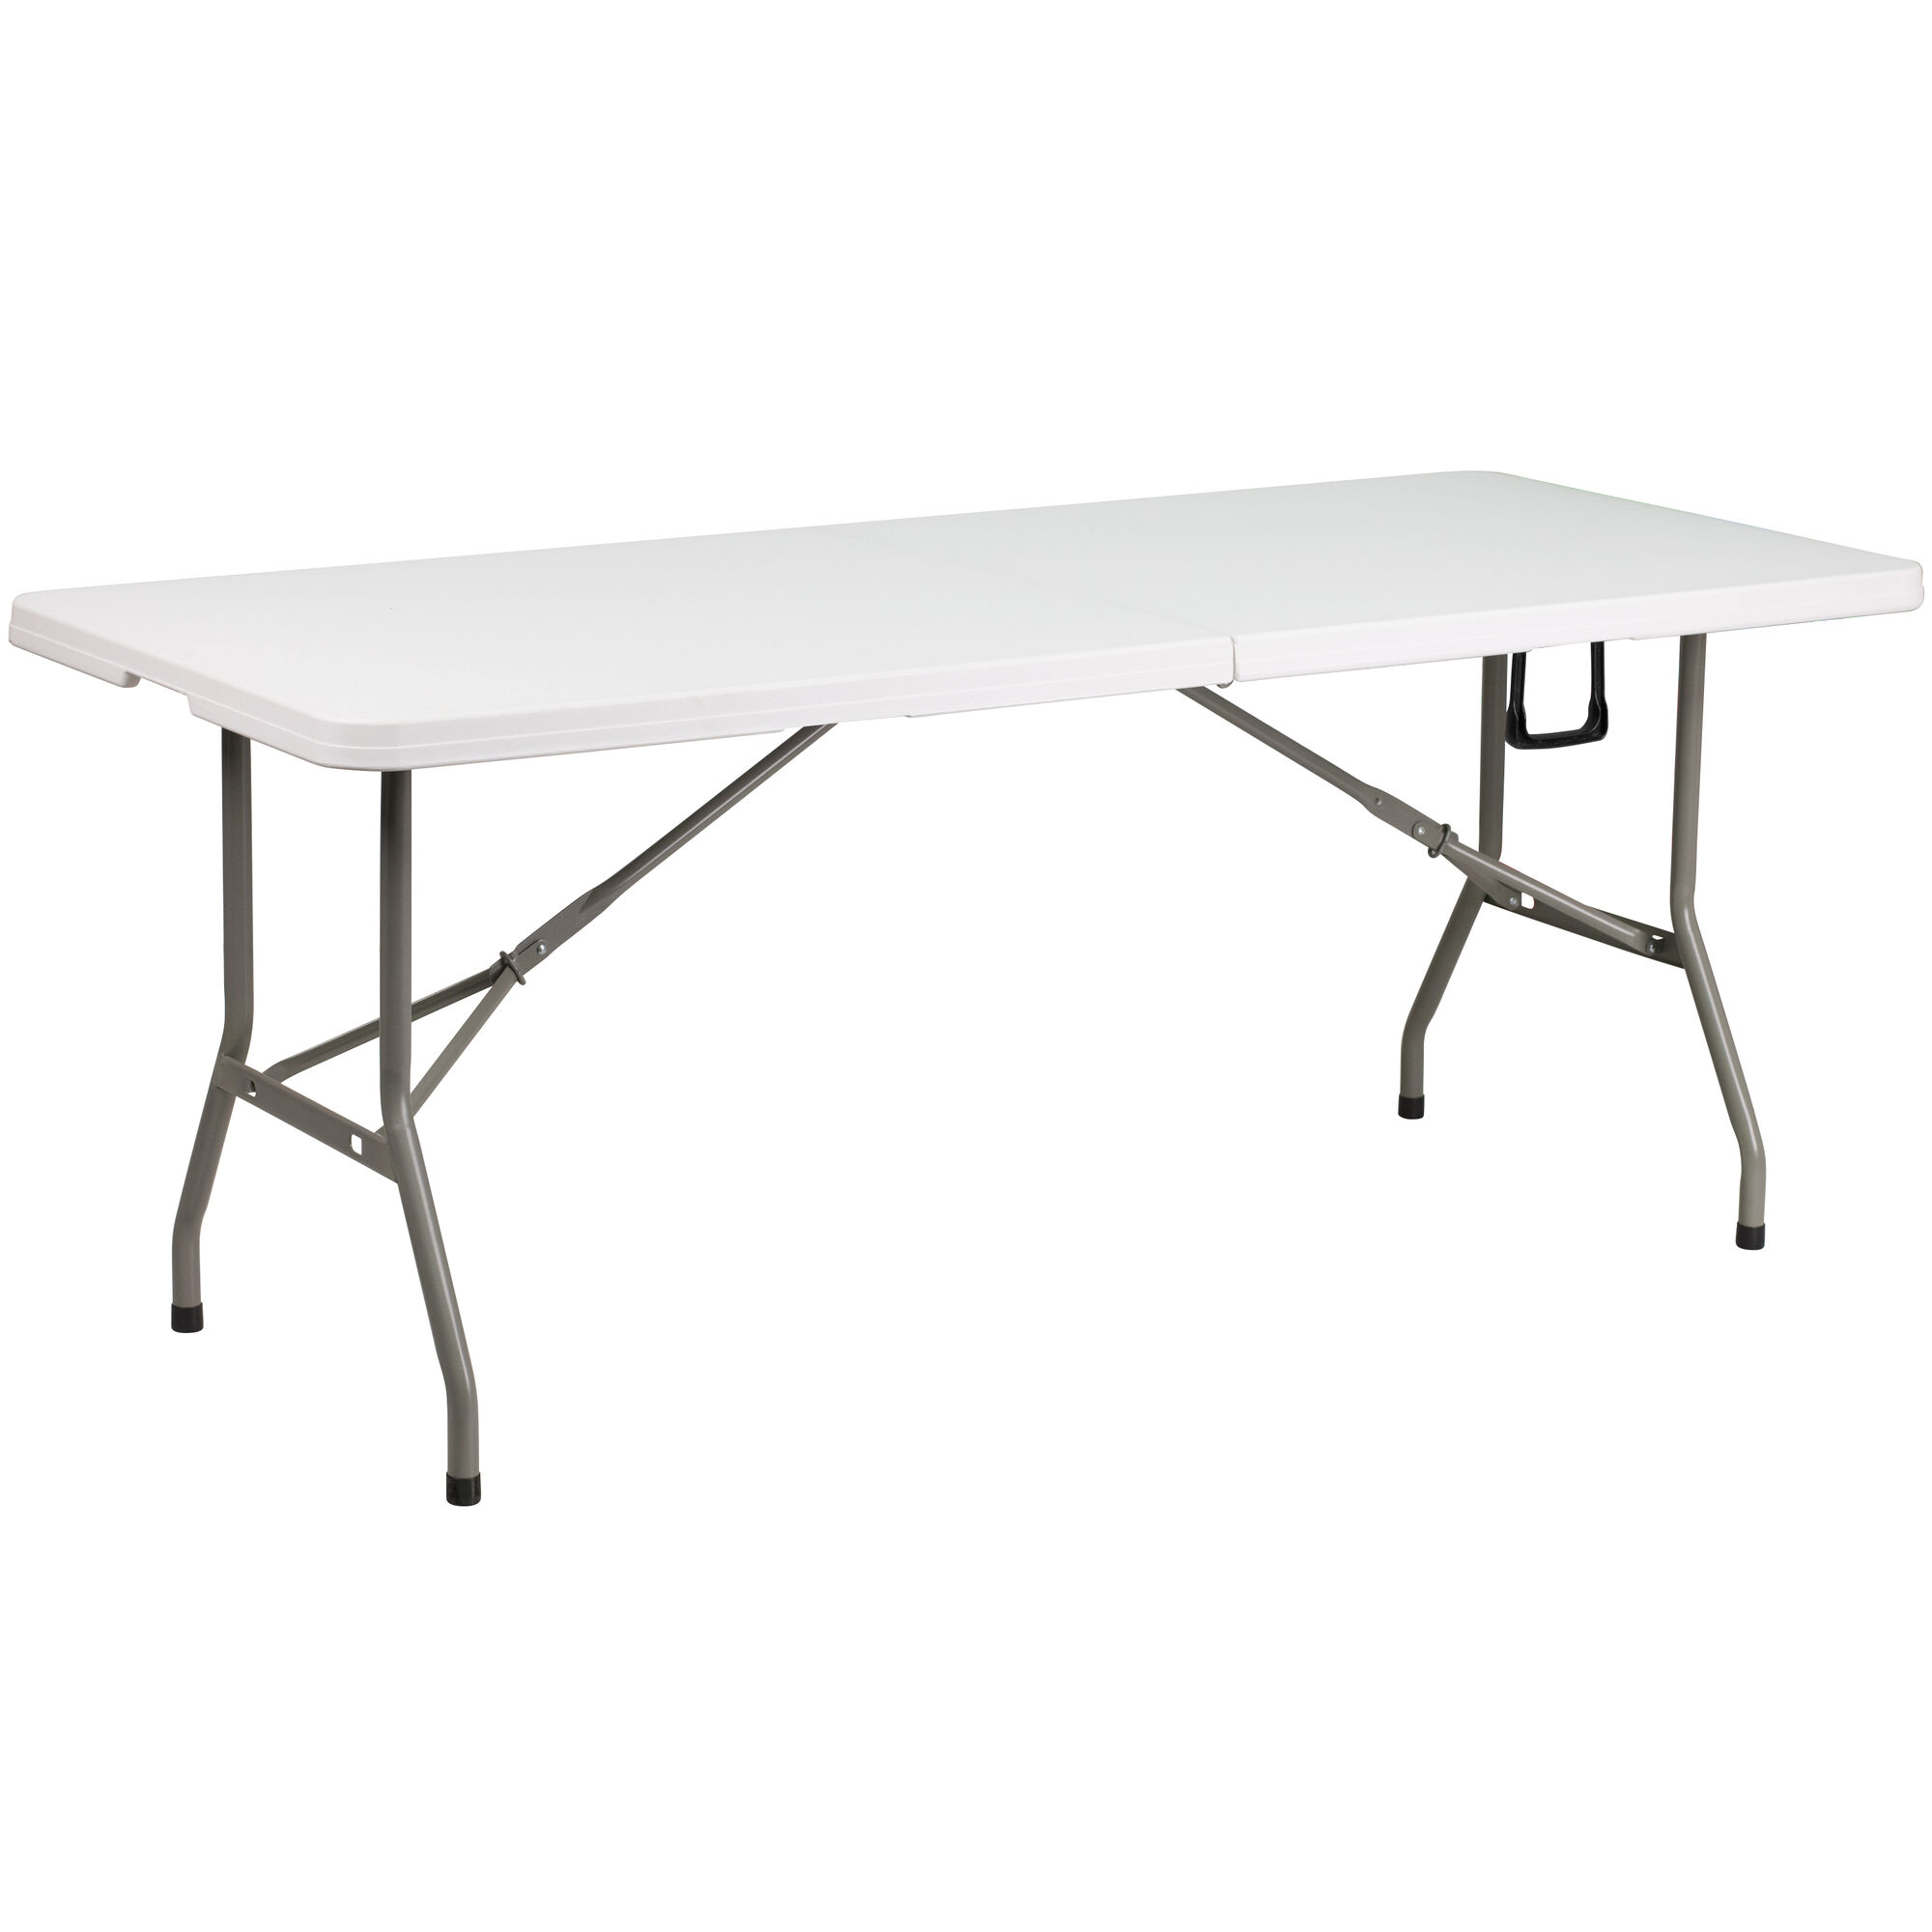 Folding Table With Handle.6 Foot Bi Fold Granite White Plastic Banquet And Event Folding Table With Carrying Handle